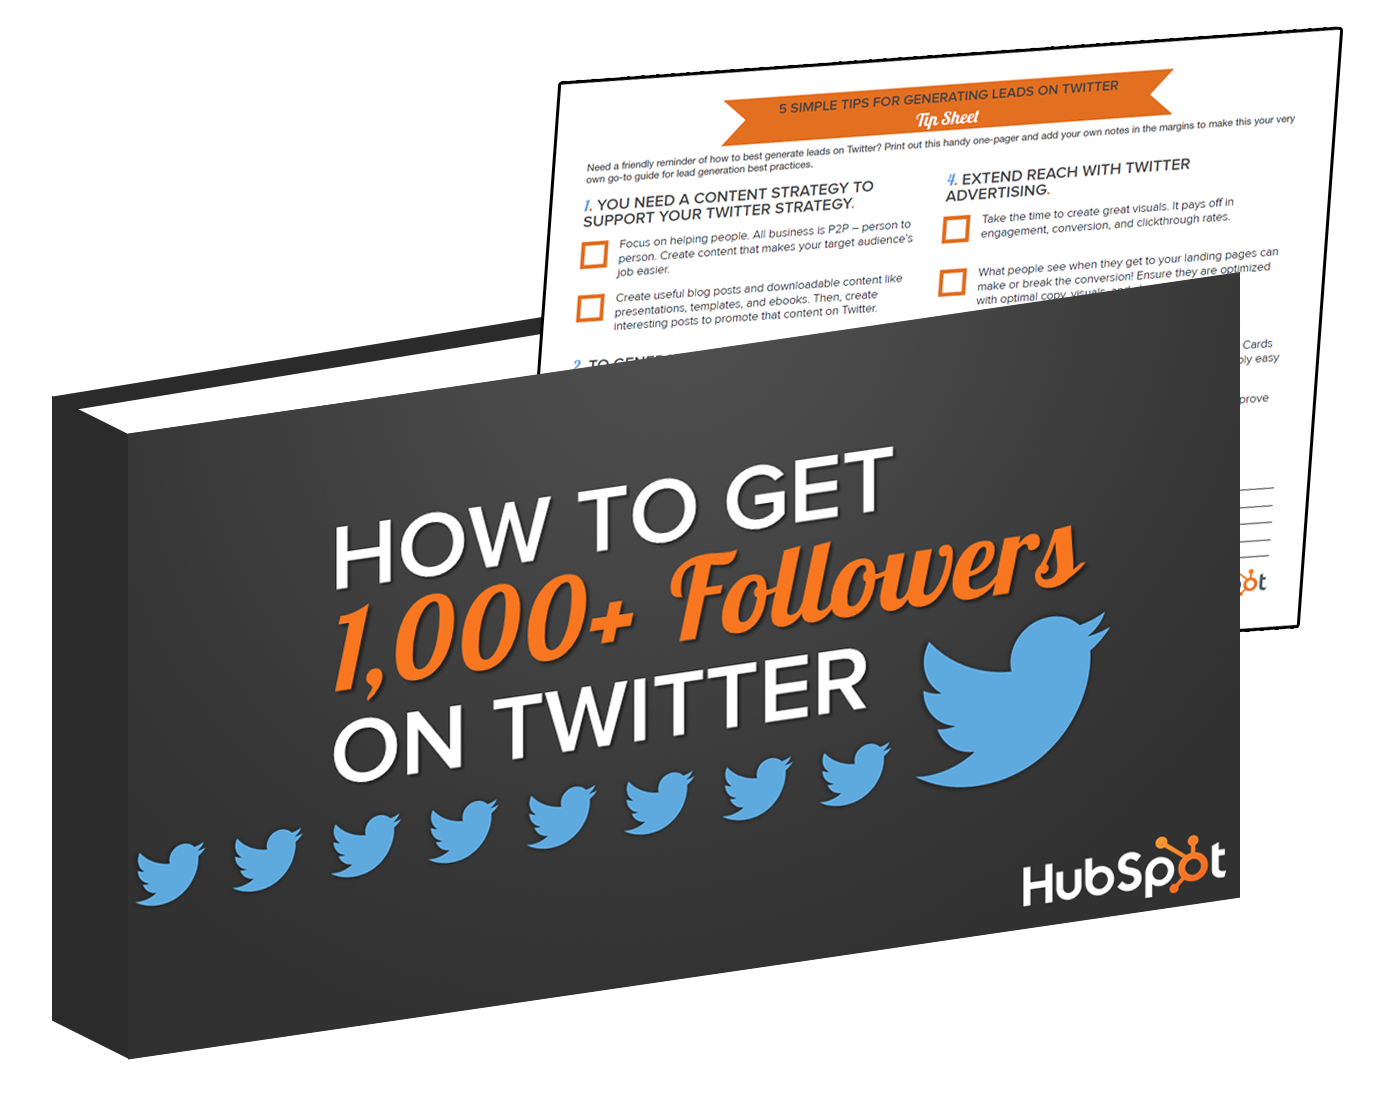 What Should I Tweet? 8 Places to Find Fantastic Content [SlideShare]